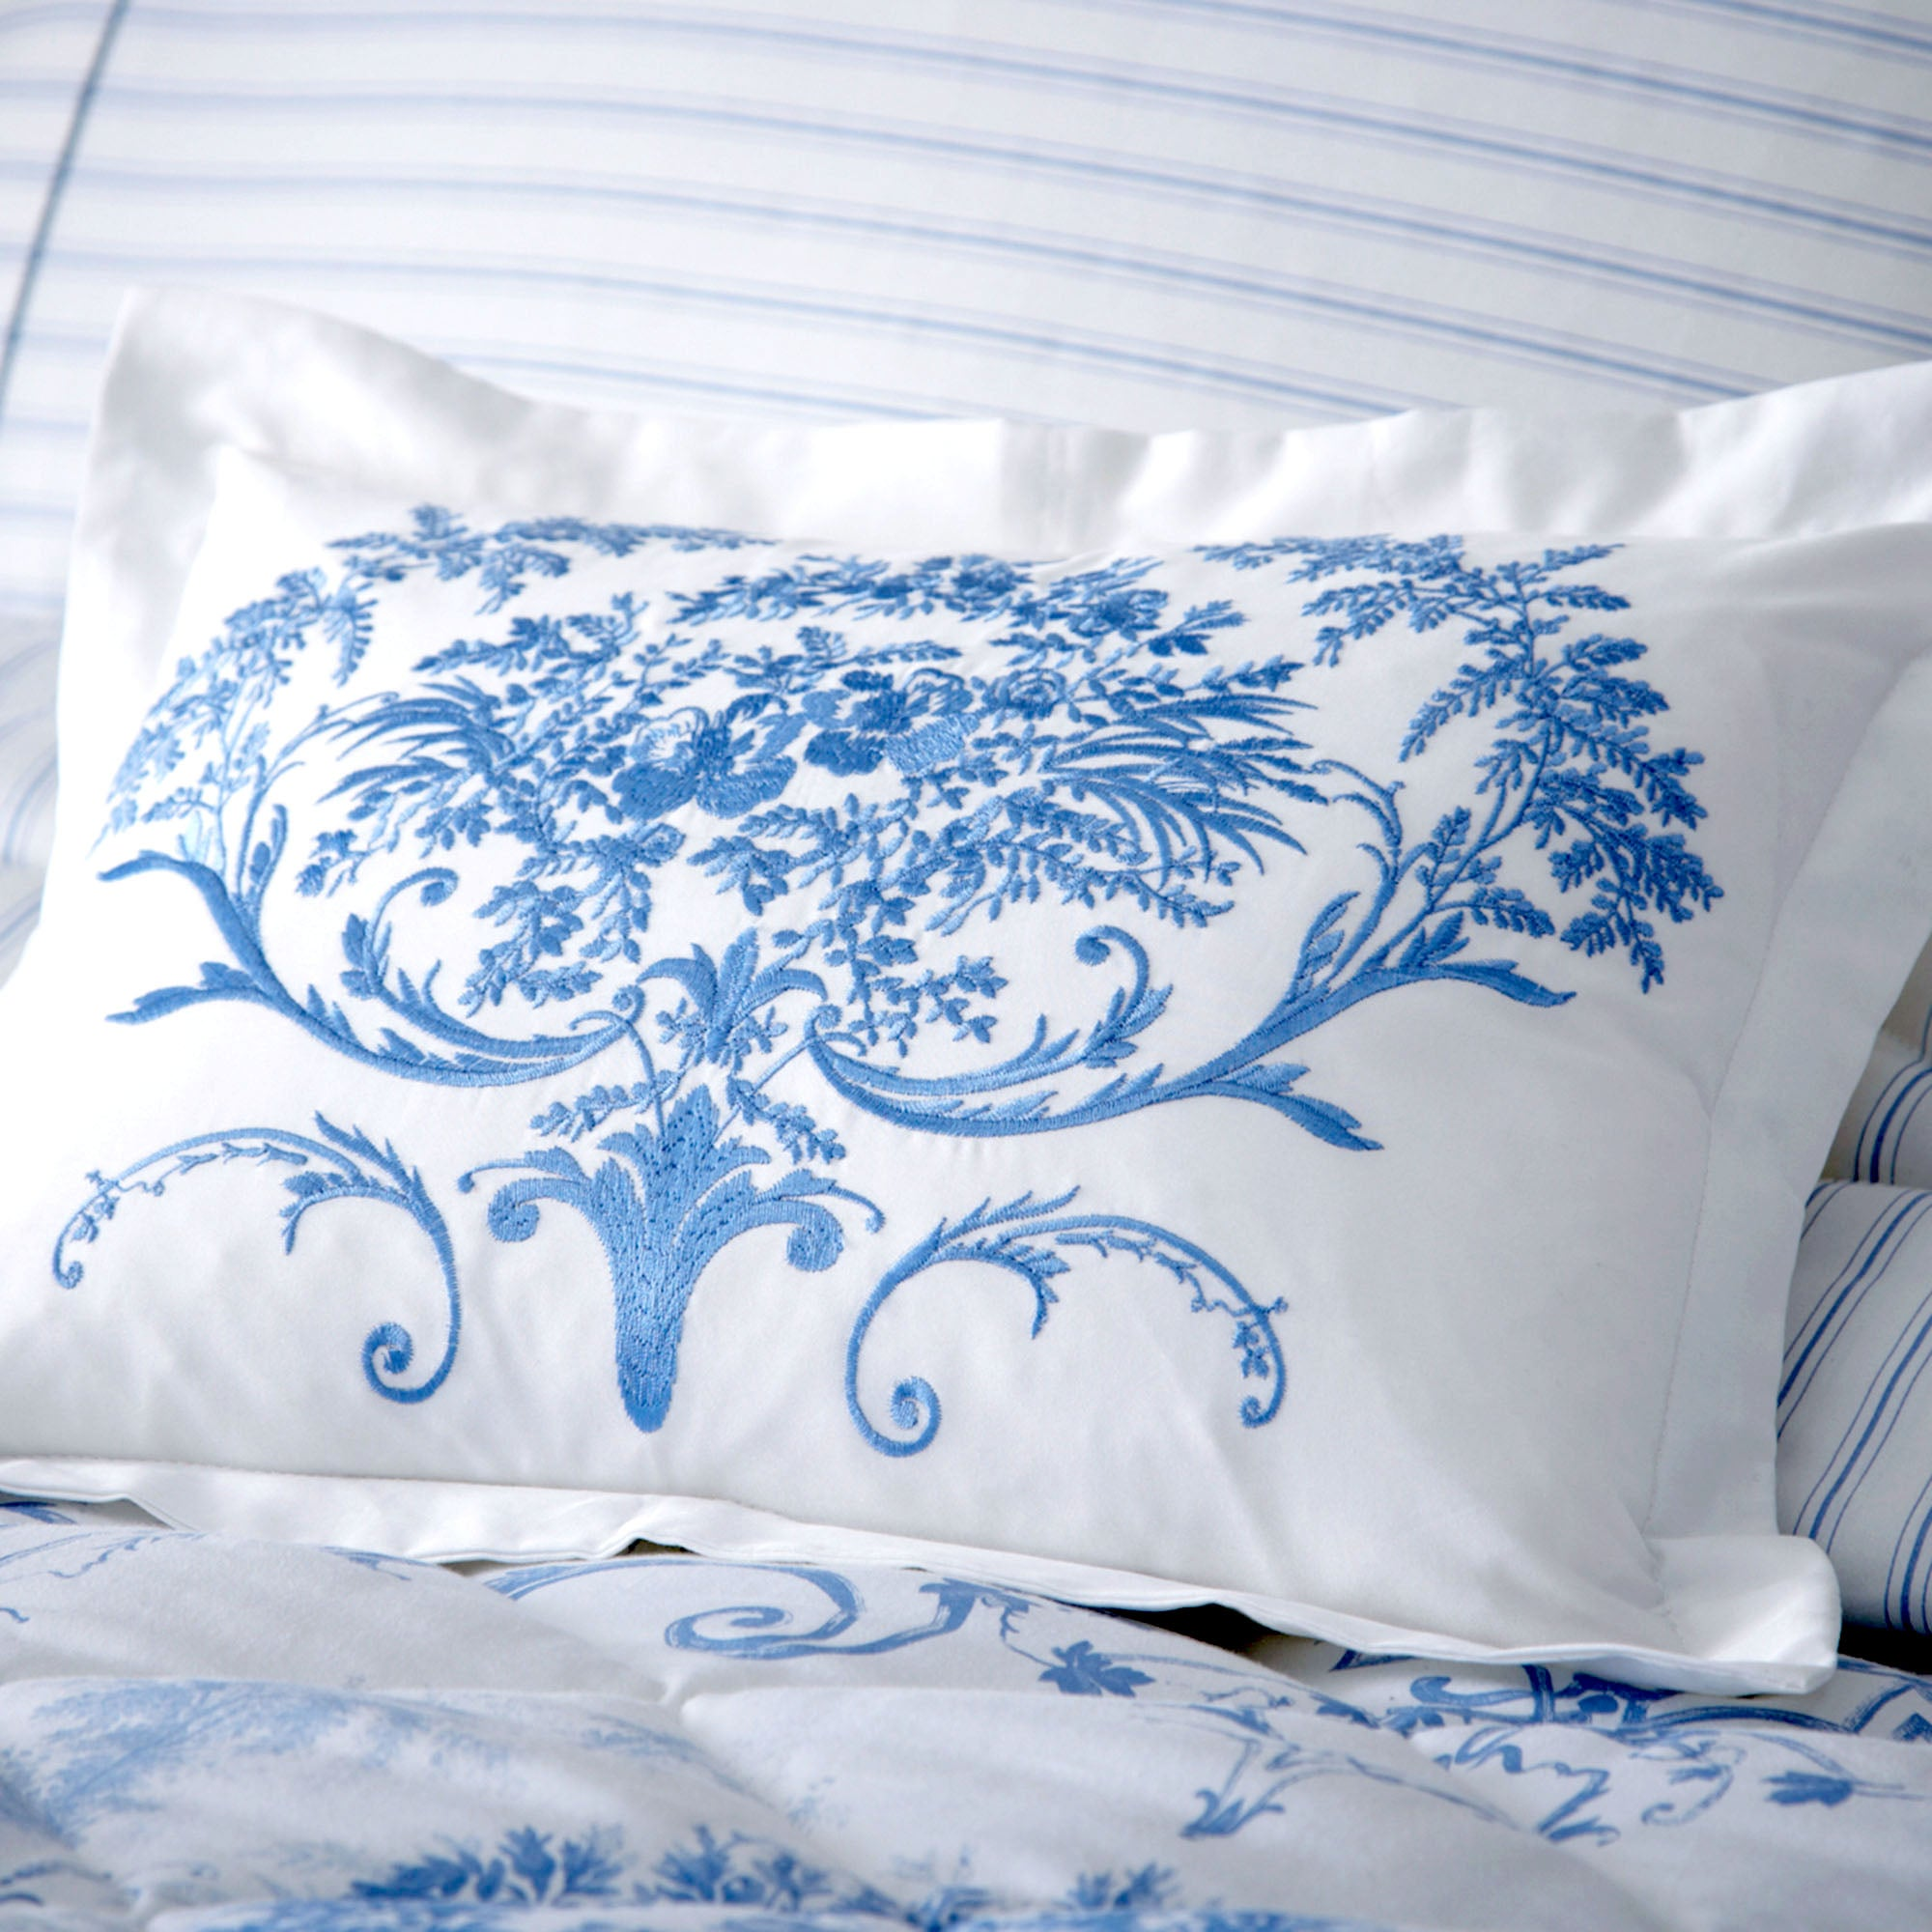 Dorma Blue Toile Bedlinen Collection